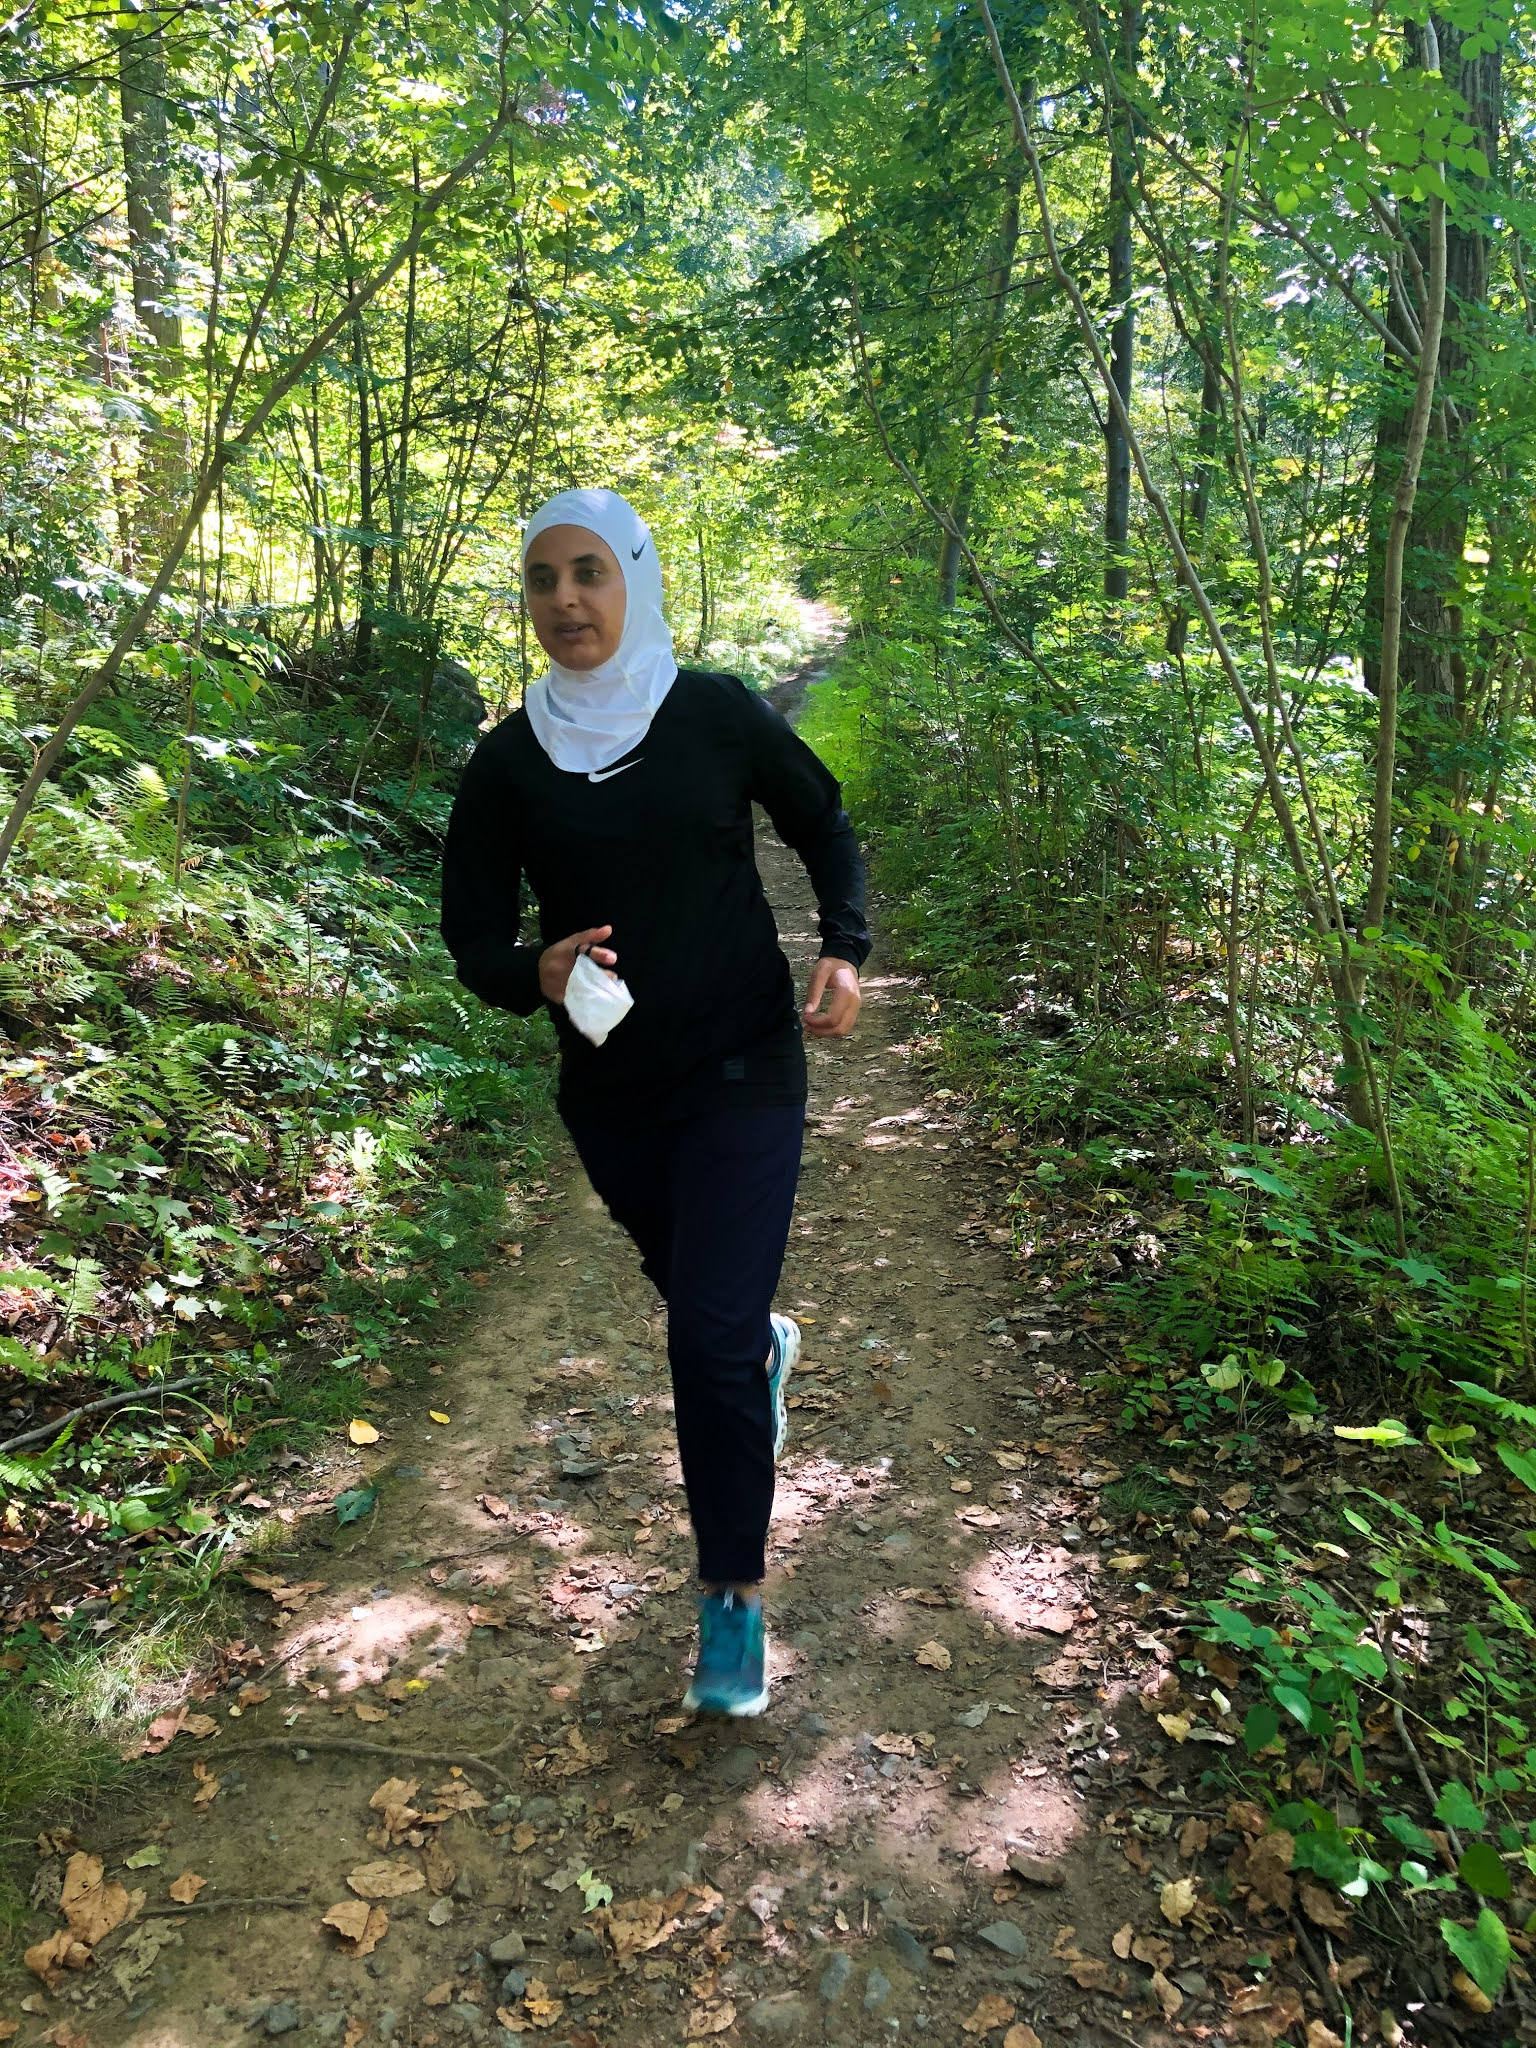 Sahara running on trail, trees around path, mask in hand